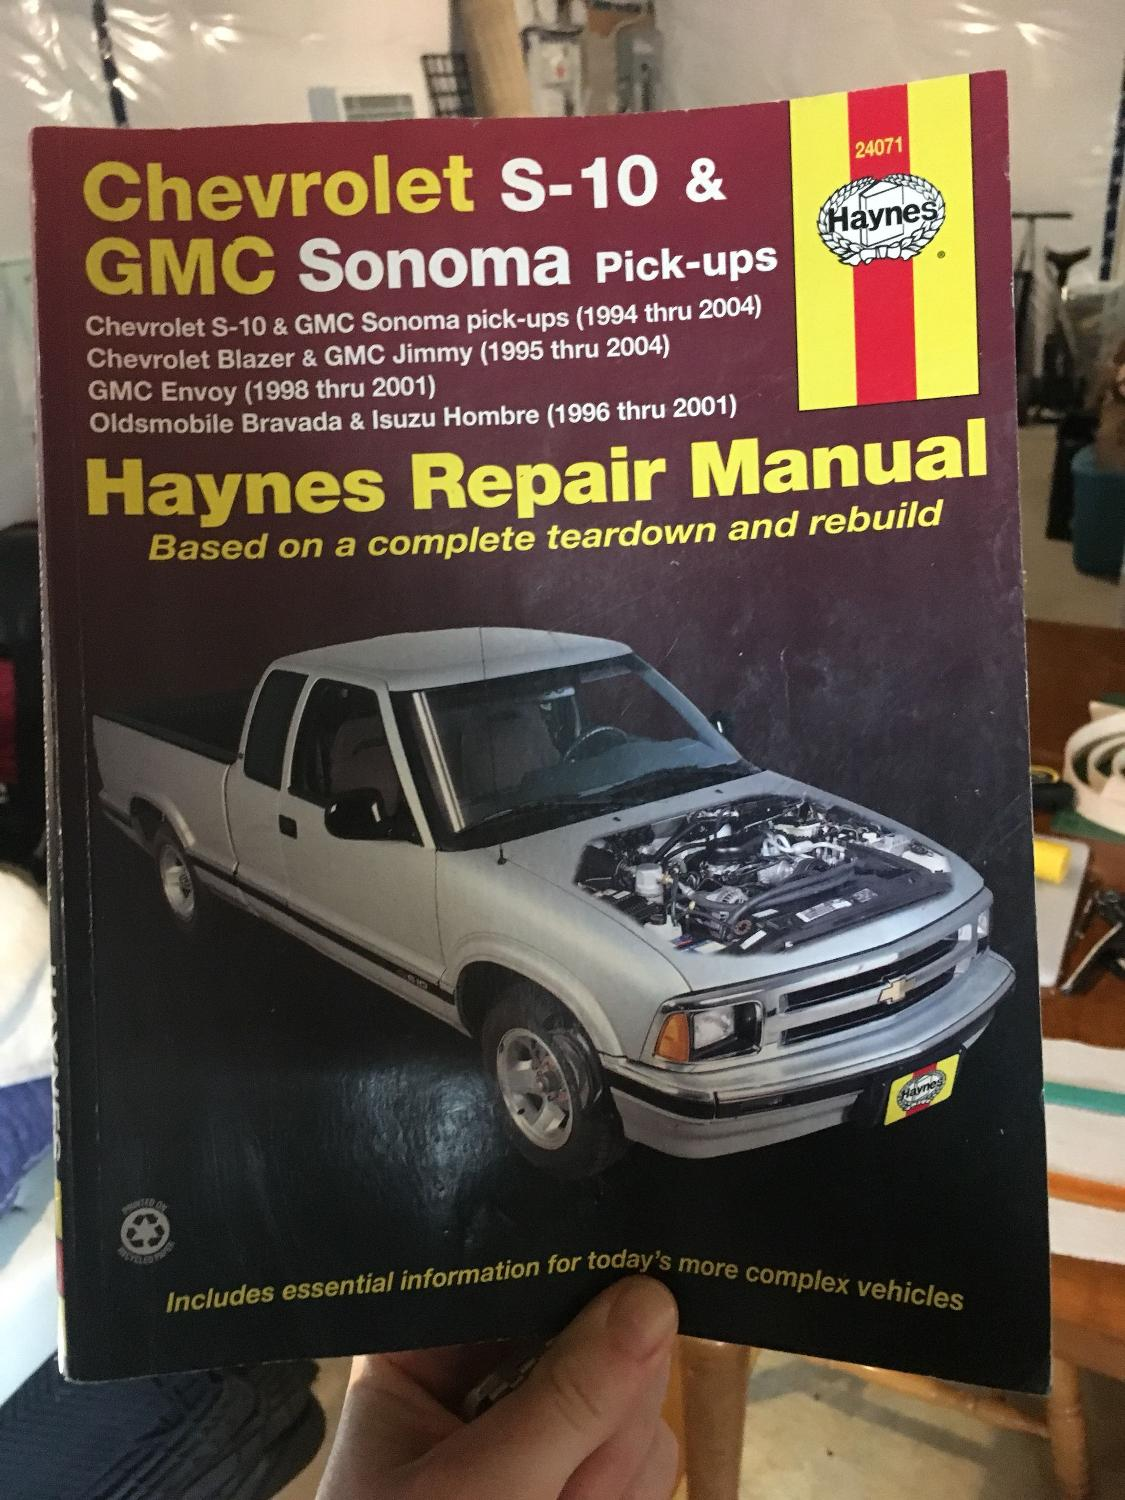 Best Chevy S-10 And Gmc Sonoma Repair Manual for sale in Winnipeg, Manitoba  for 2018